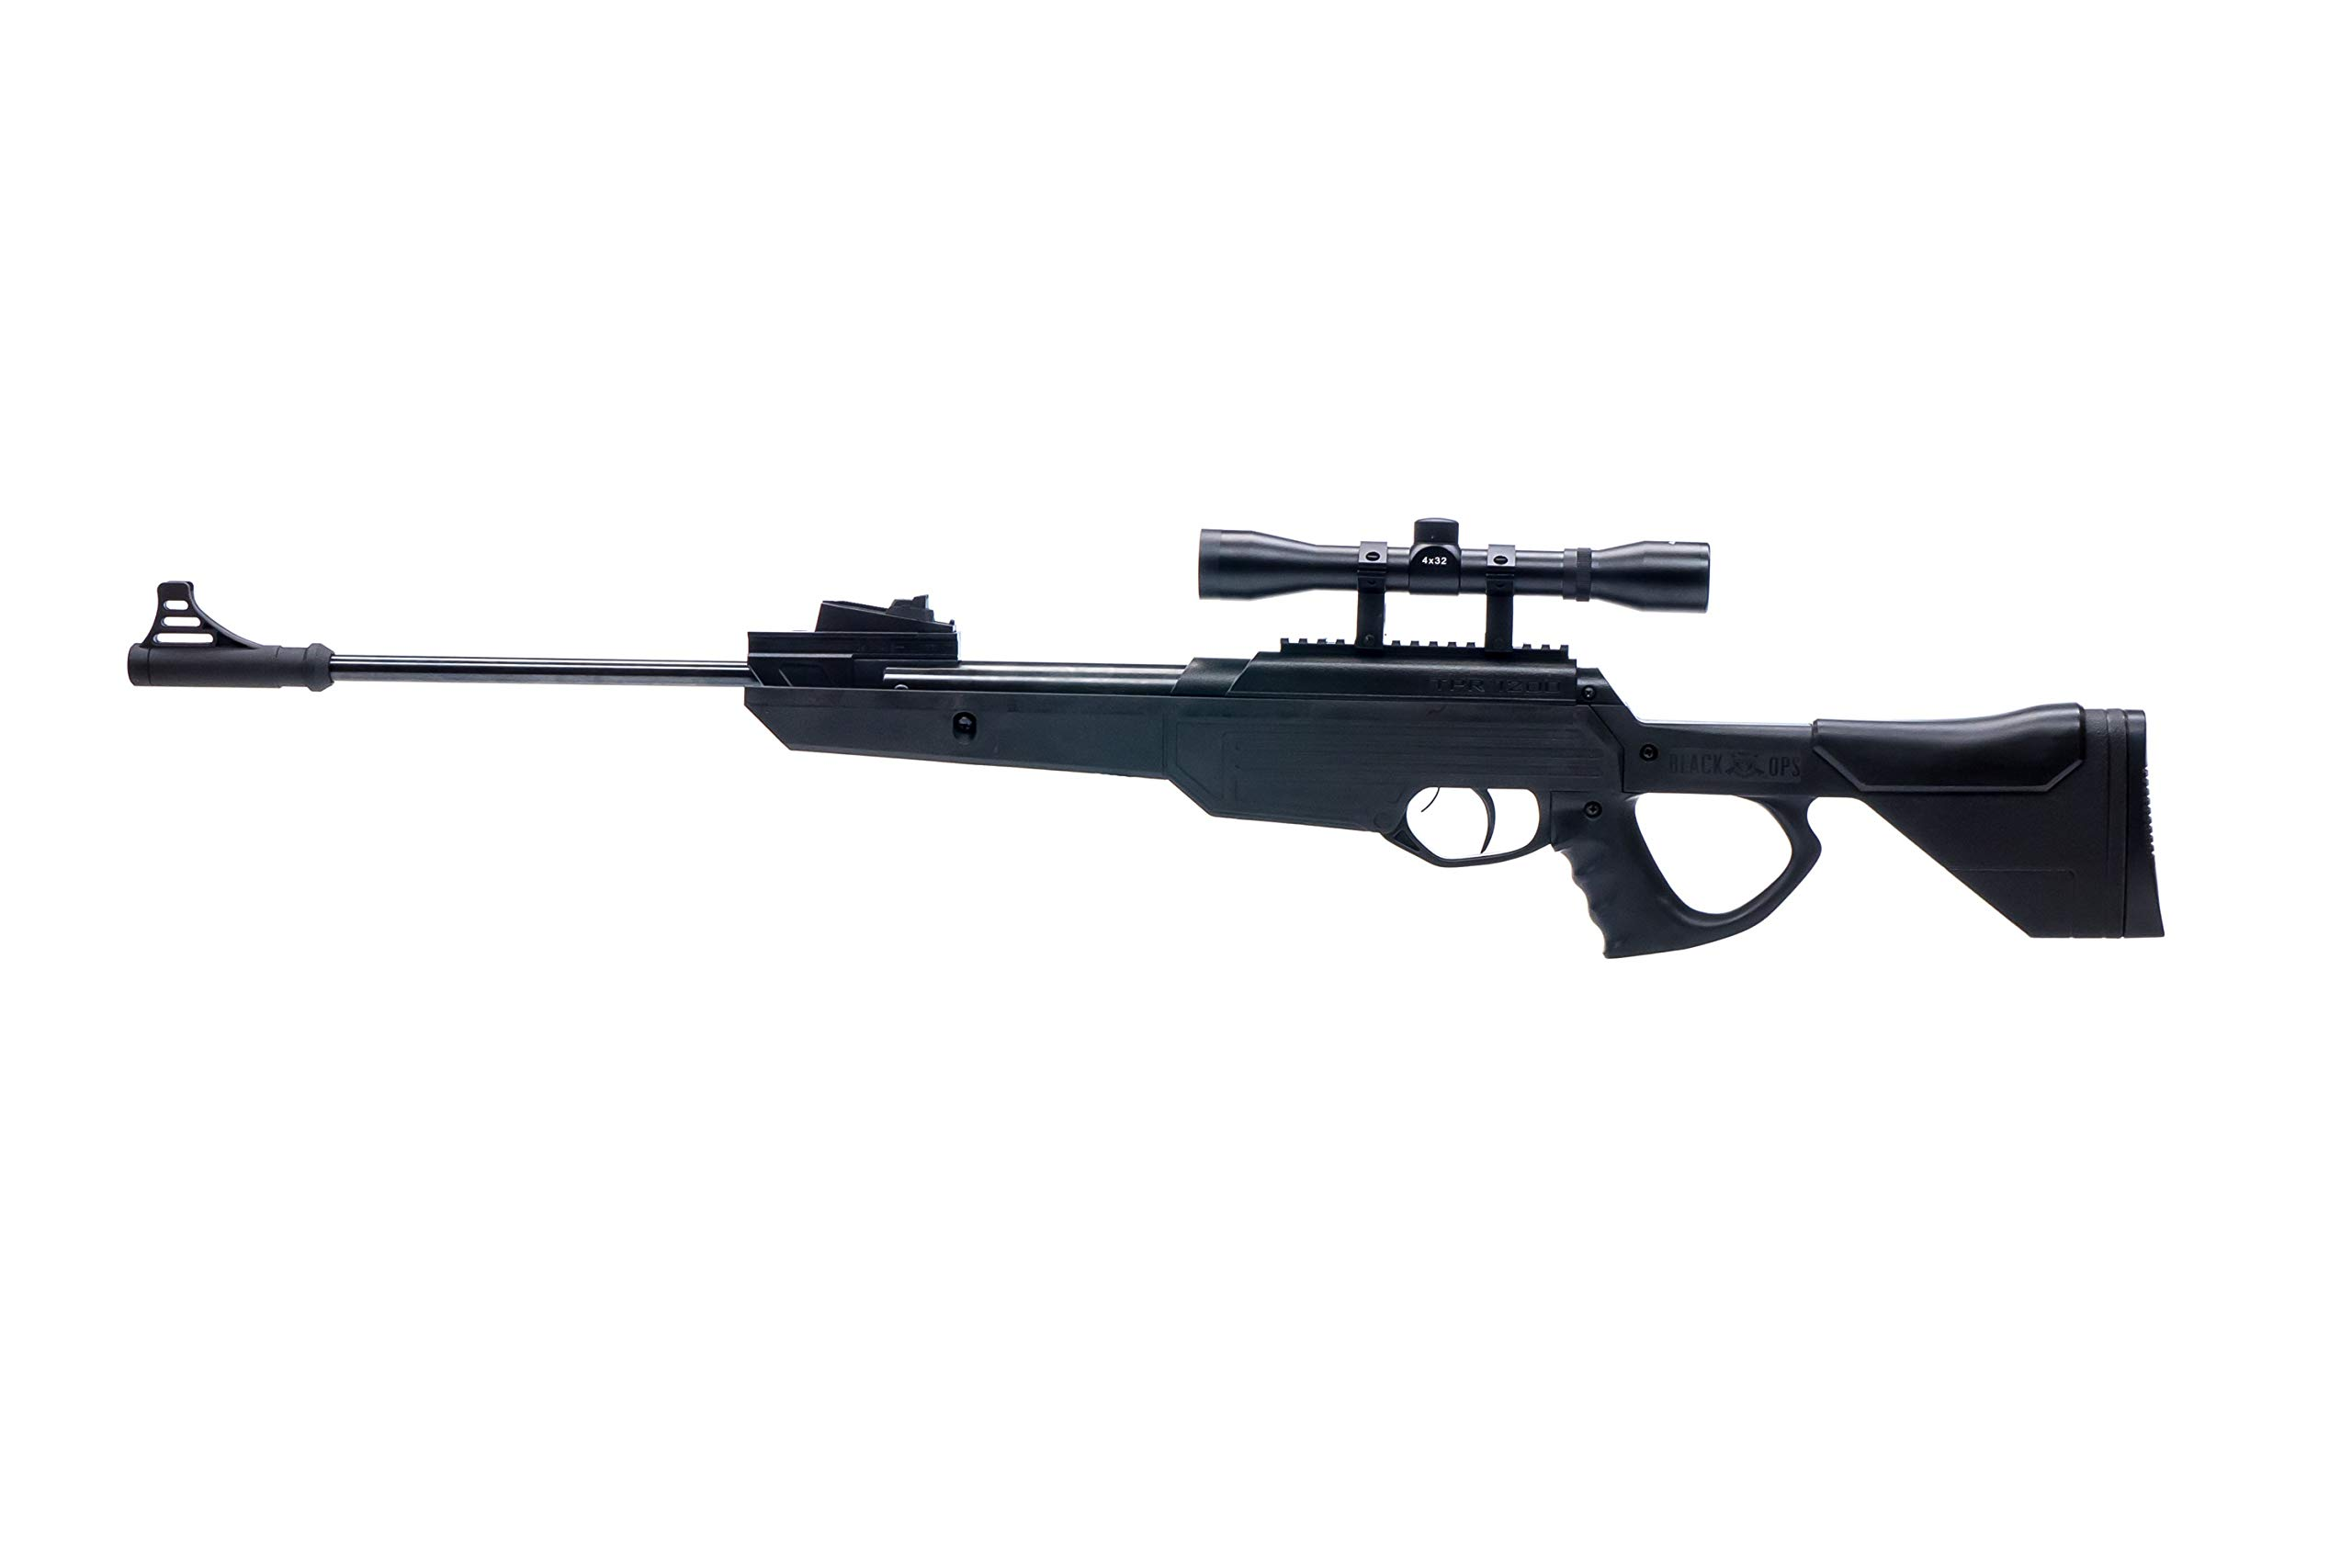 Bear River Pellet Gun Air Rifle For Hunting Scope Included TPR 1200 by Bear River